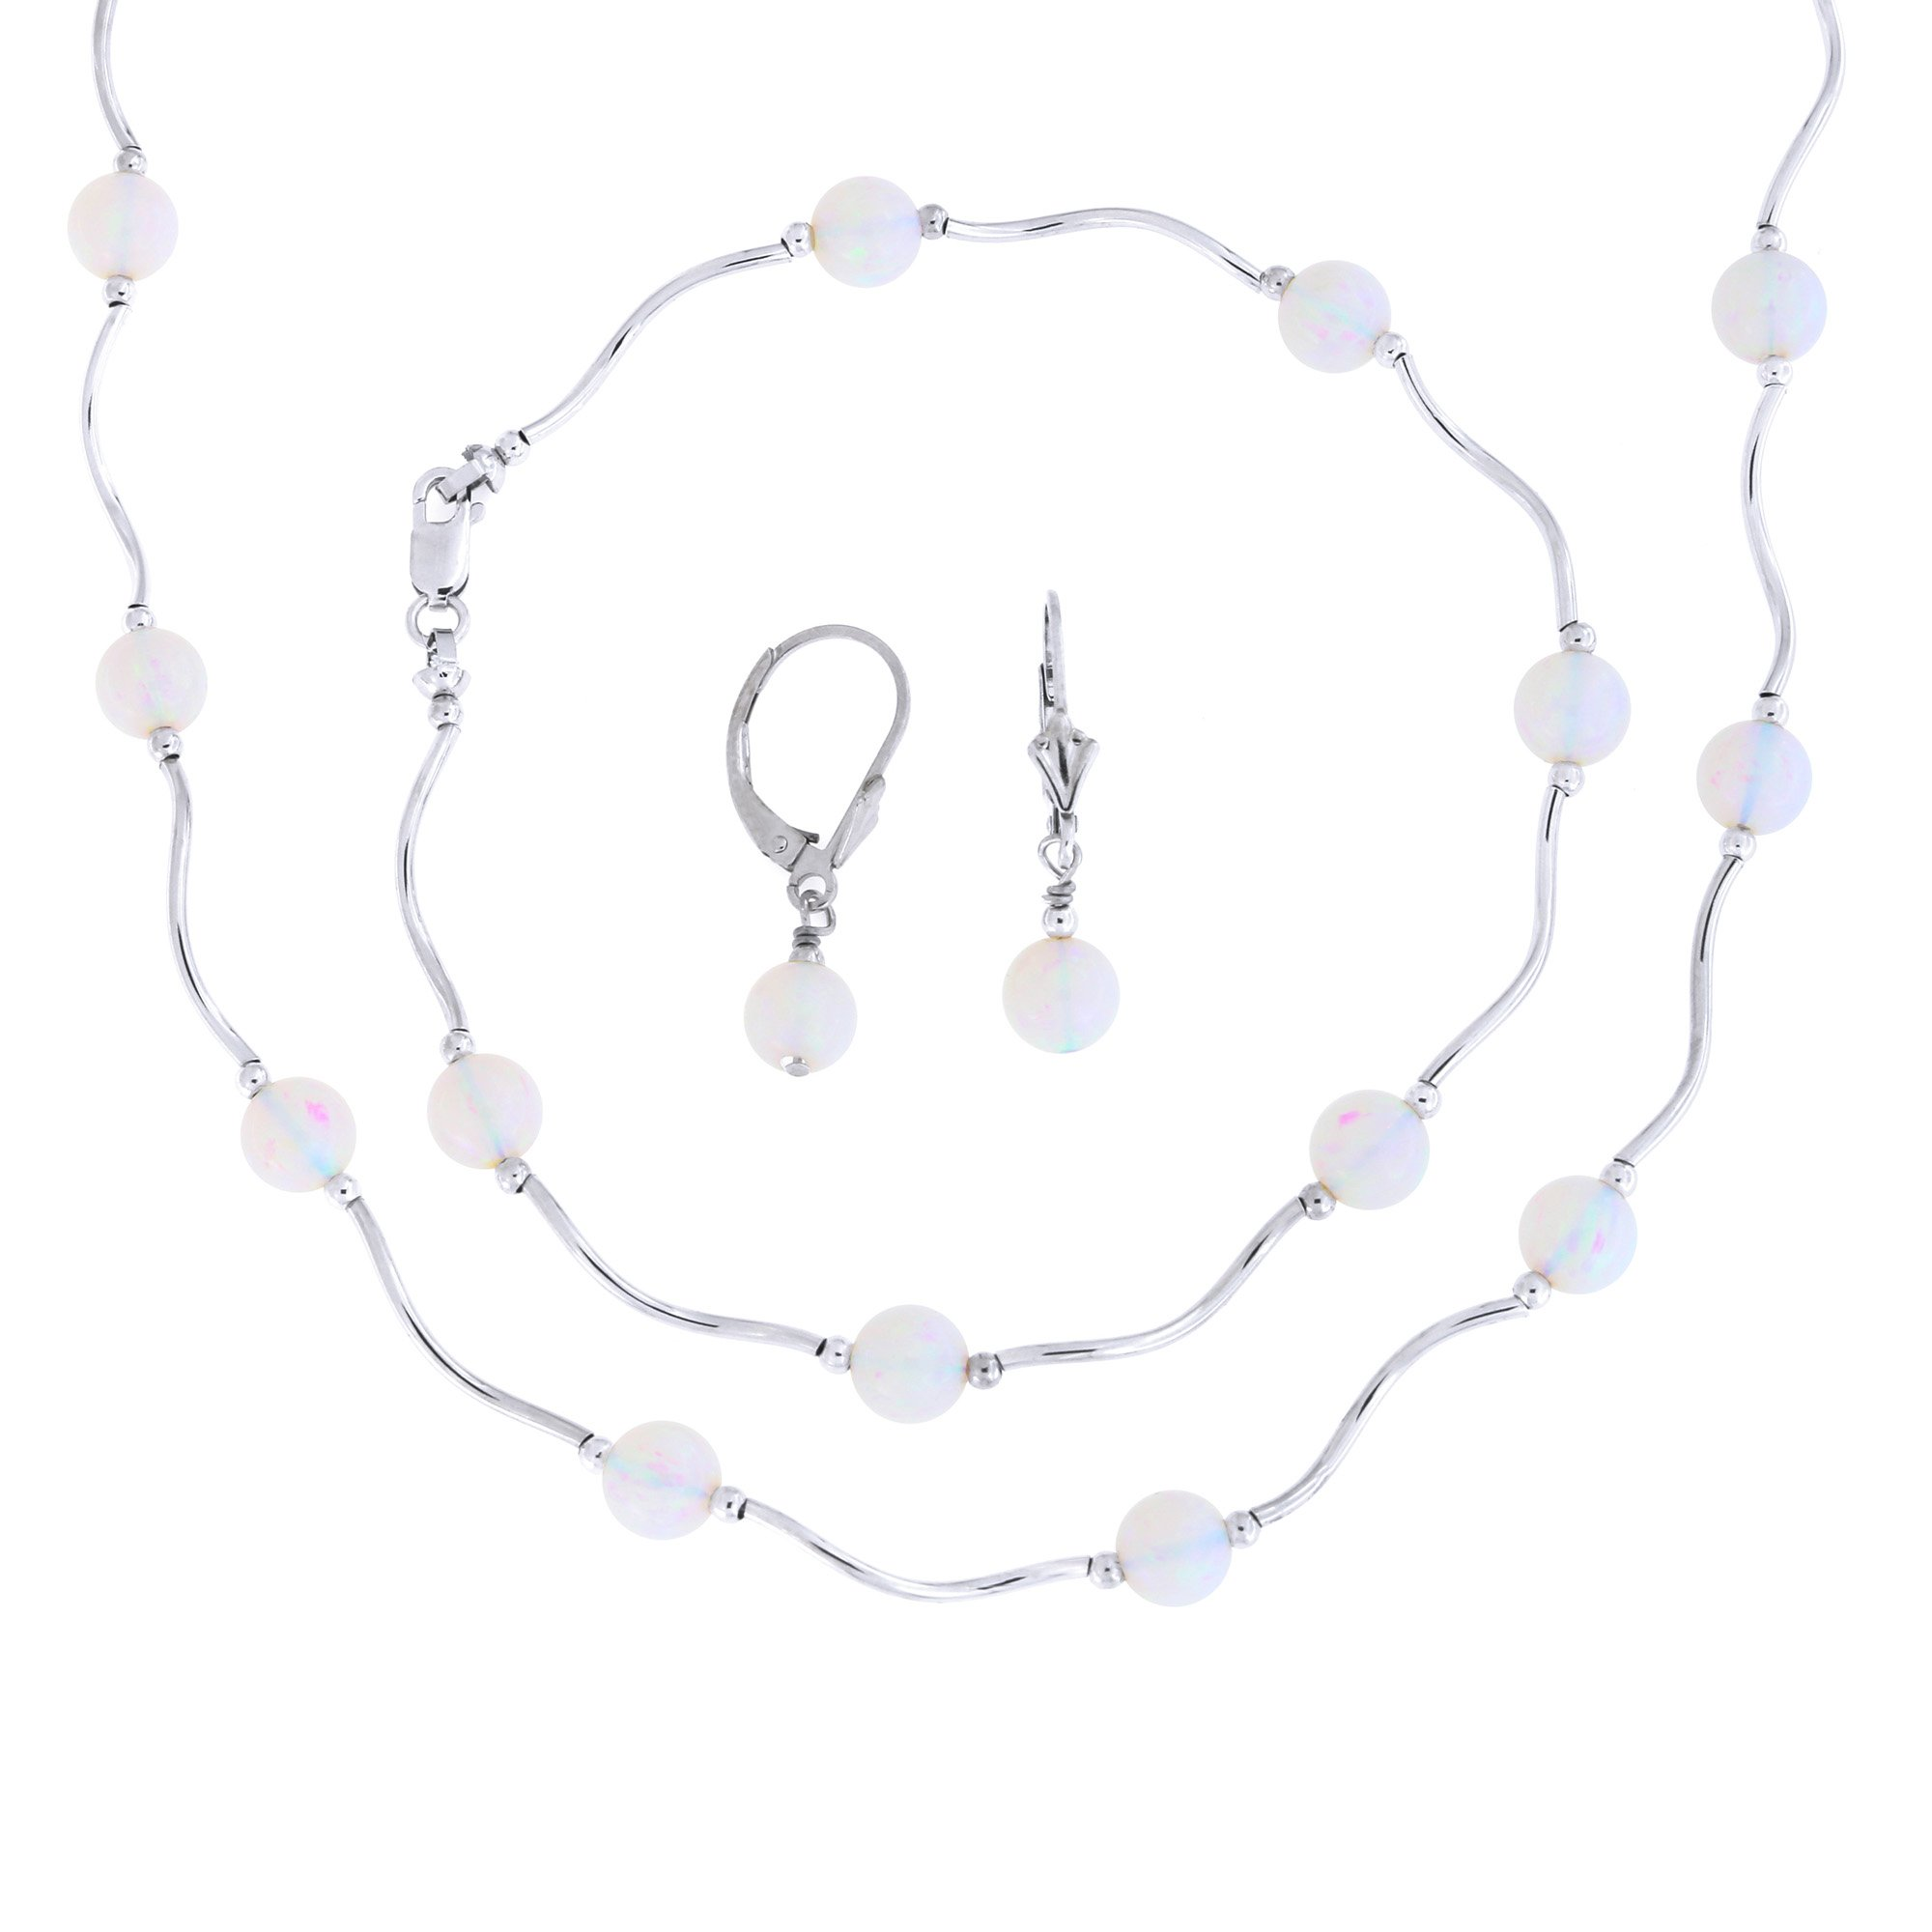 Sterling Silver Rhodium Plated 6mm Simulated White Opal Station Necklace, Earrings and Bracelet Set